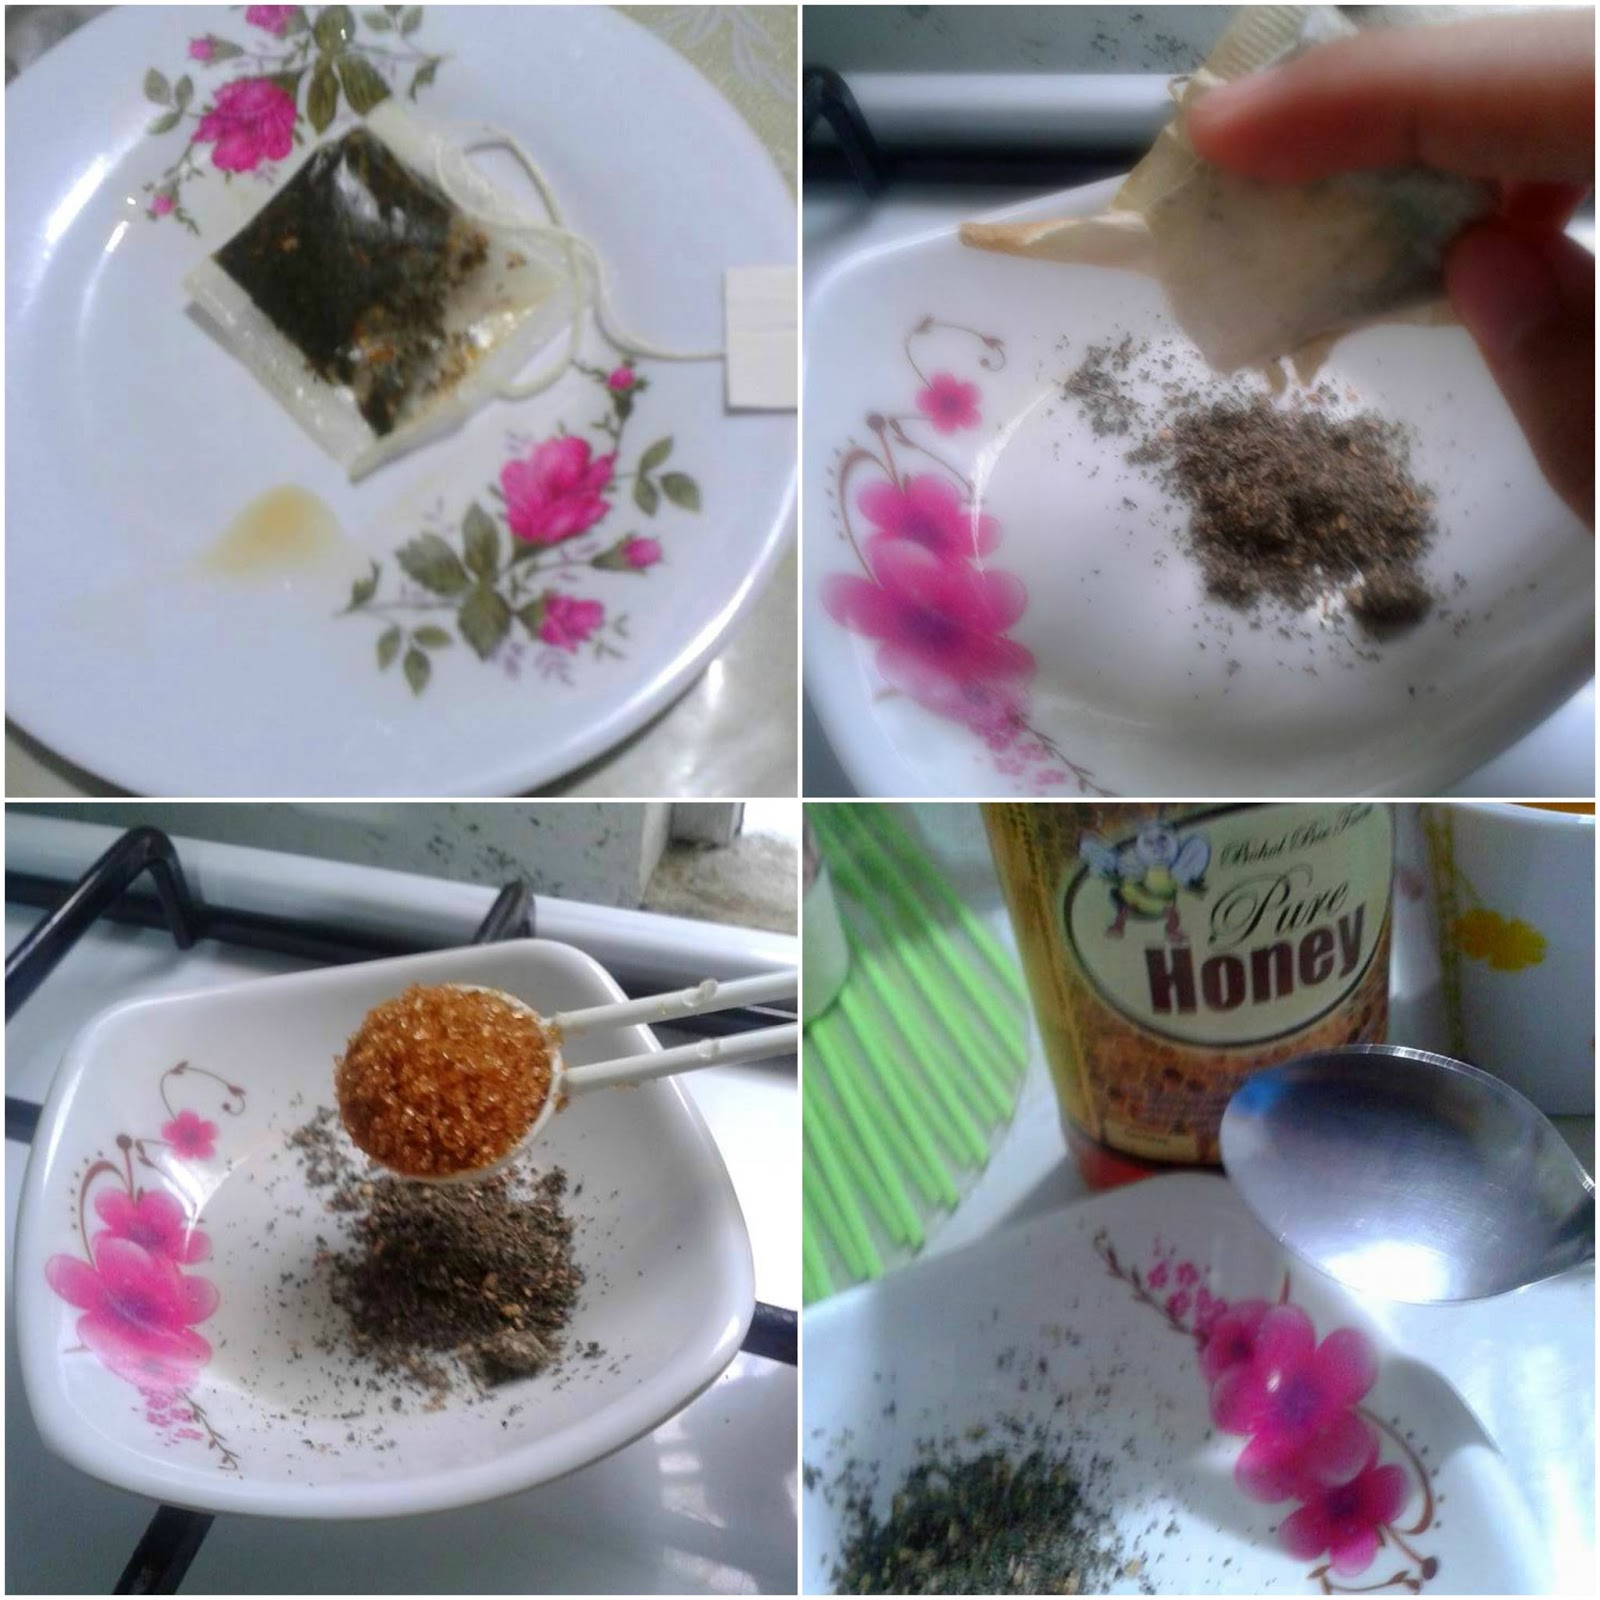 steps on how to have green tea face scrub/mask